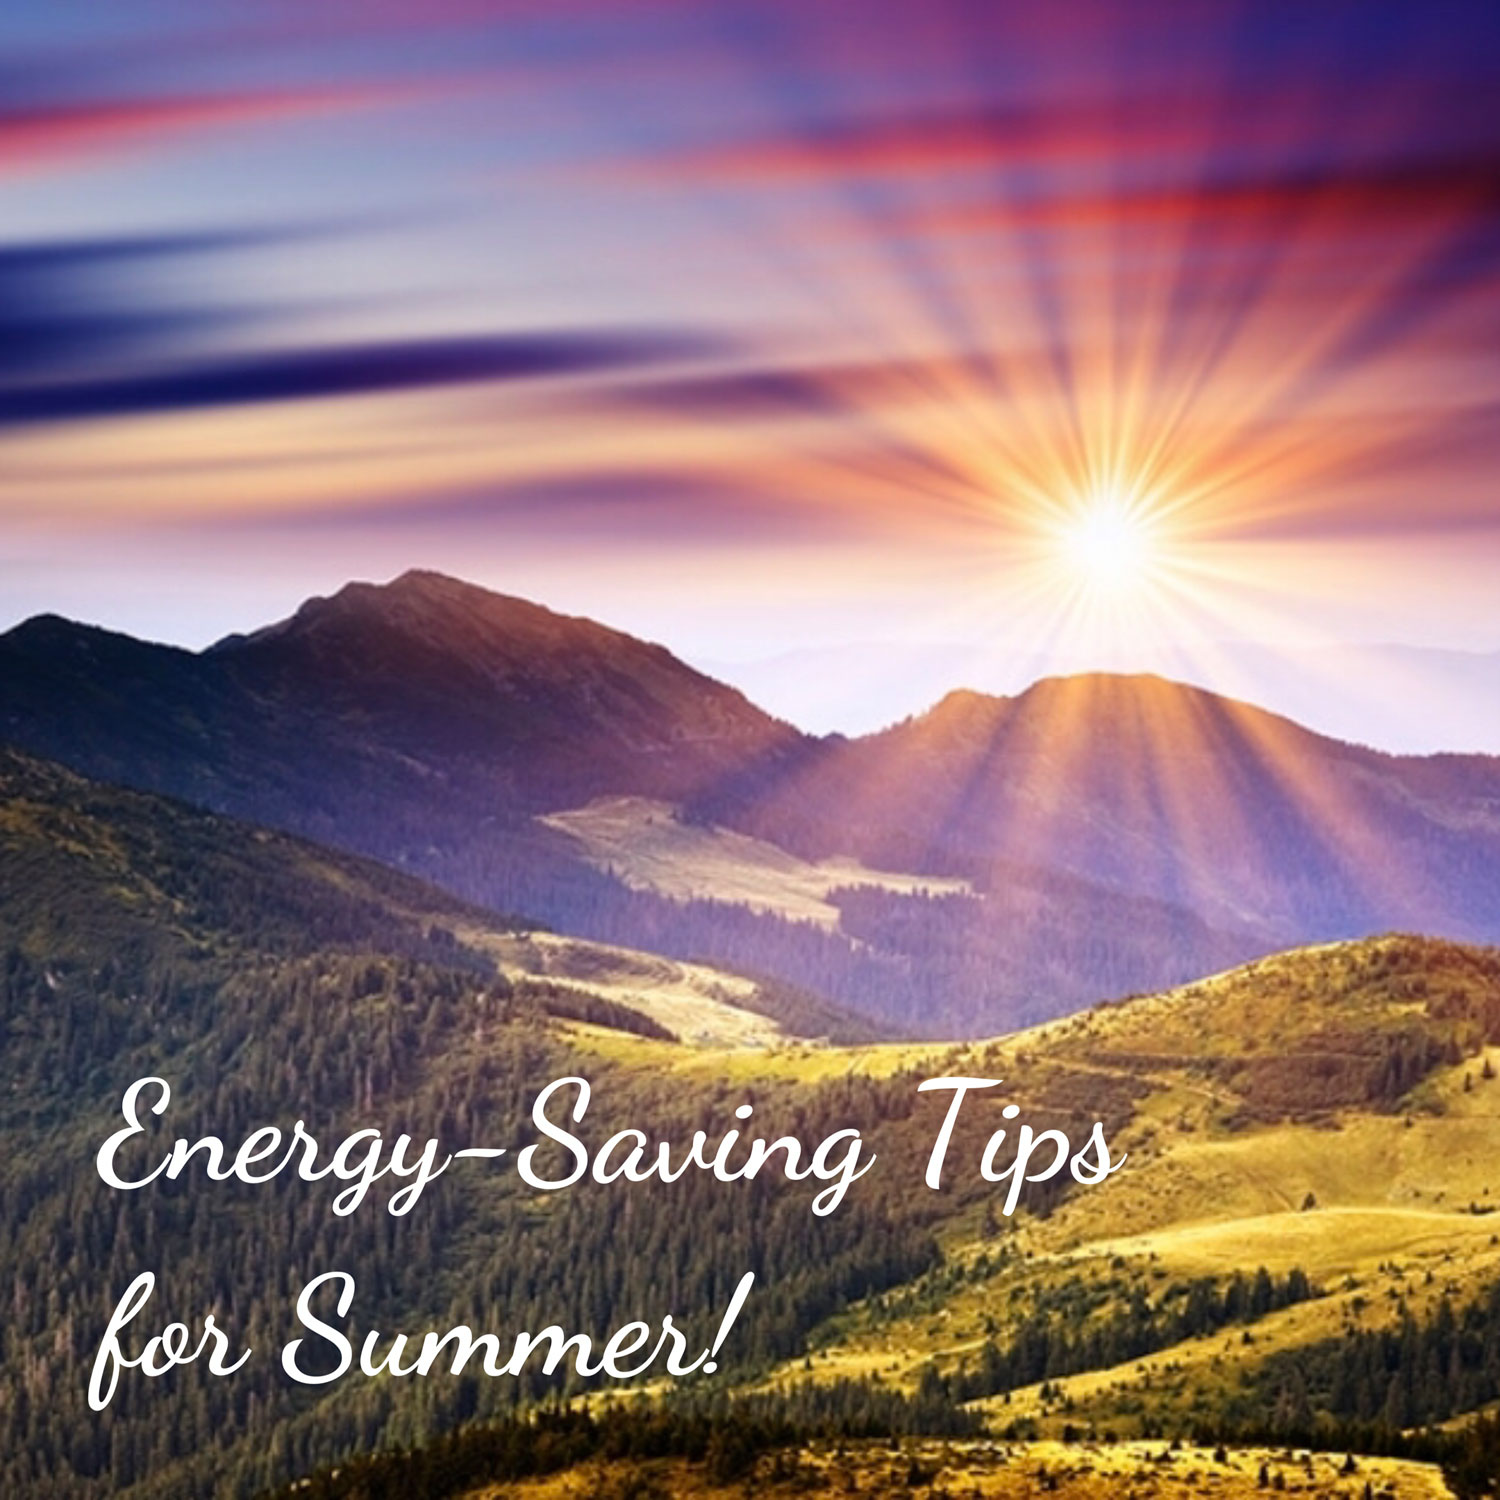 Top Energy Saving Tips for Summer!